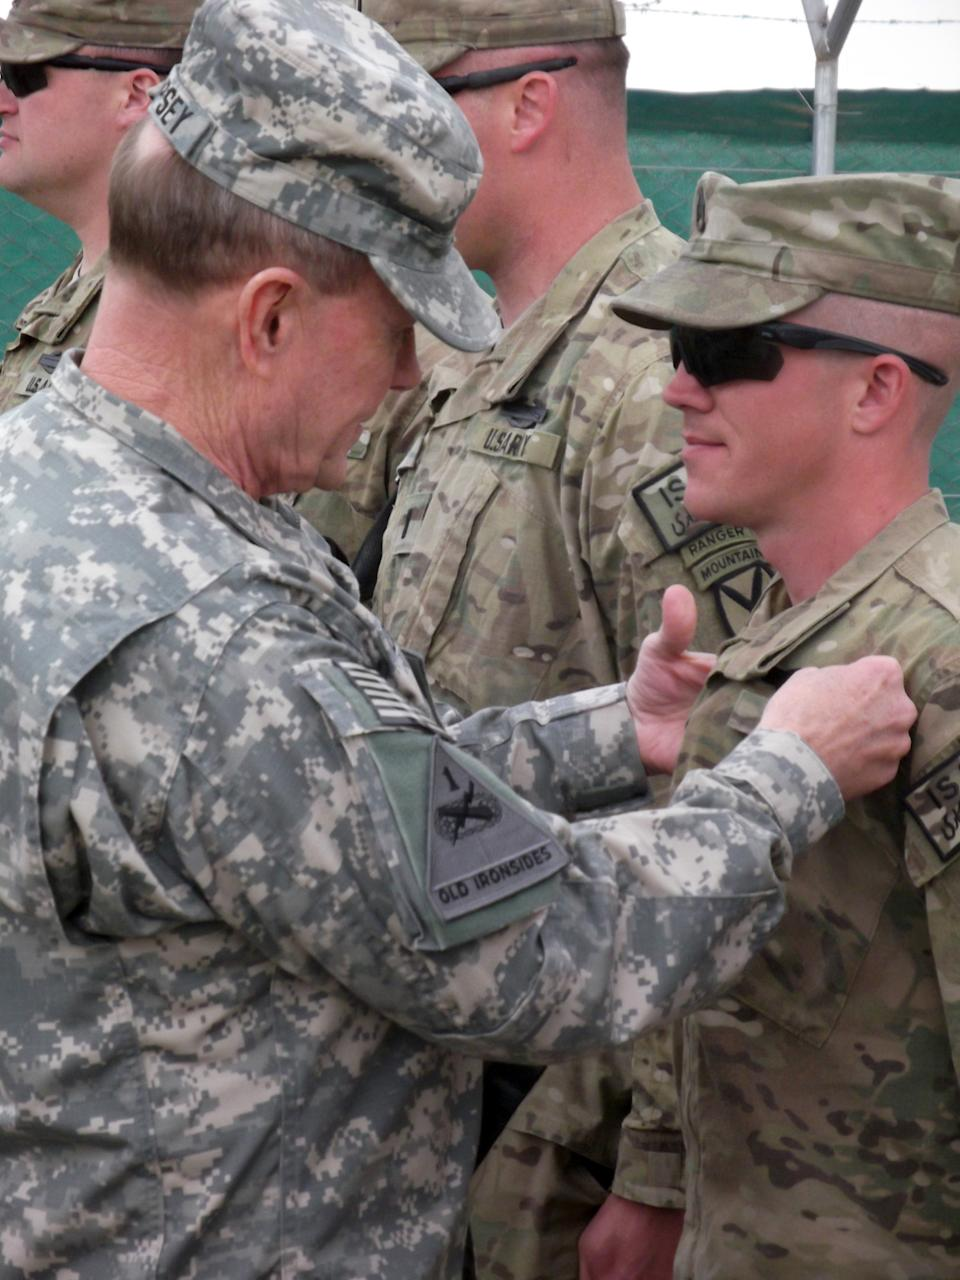 U.S. Chairman of the Joint Chiefs of Staff, Gen. Martin Dempsey, pins a Combat Infantrymen Badge on an unidentified soldier at Forward Operating Base Sharana in Afghanistan's Paktika province during his visit to the base Sunday, April 7, 2013. (AP Photo/Robert Burns)